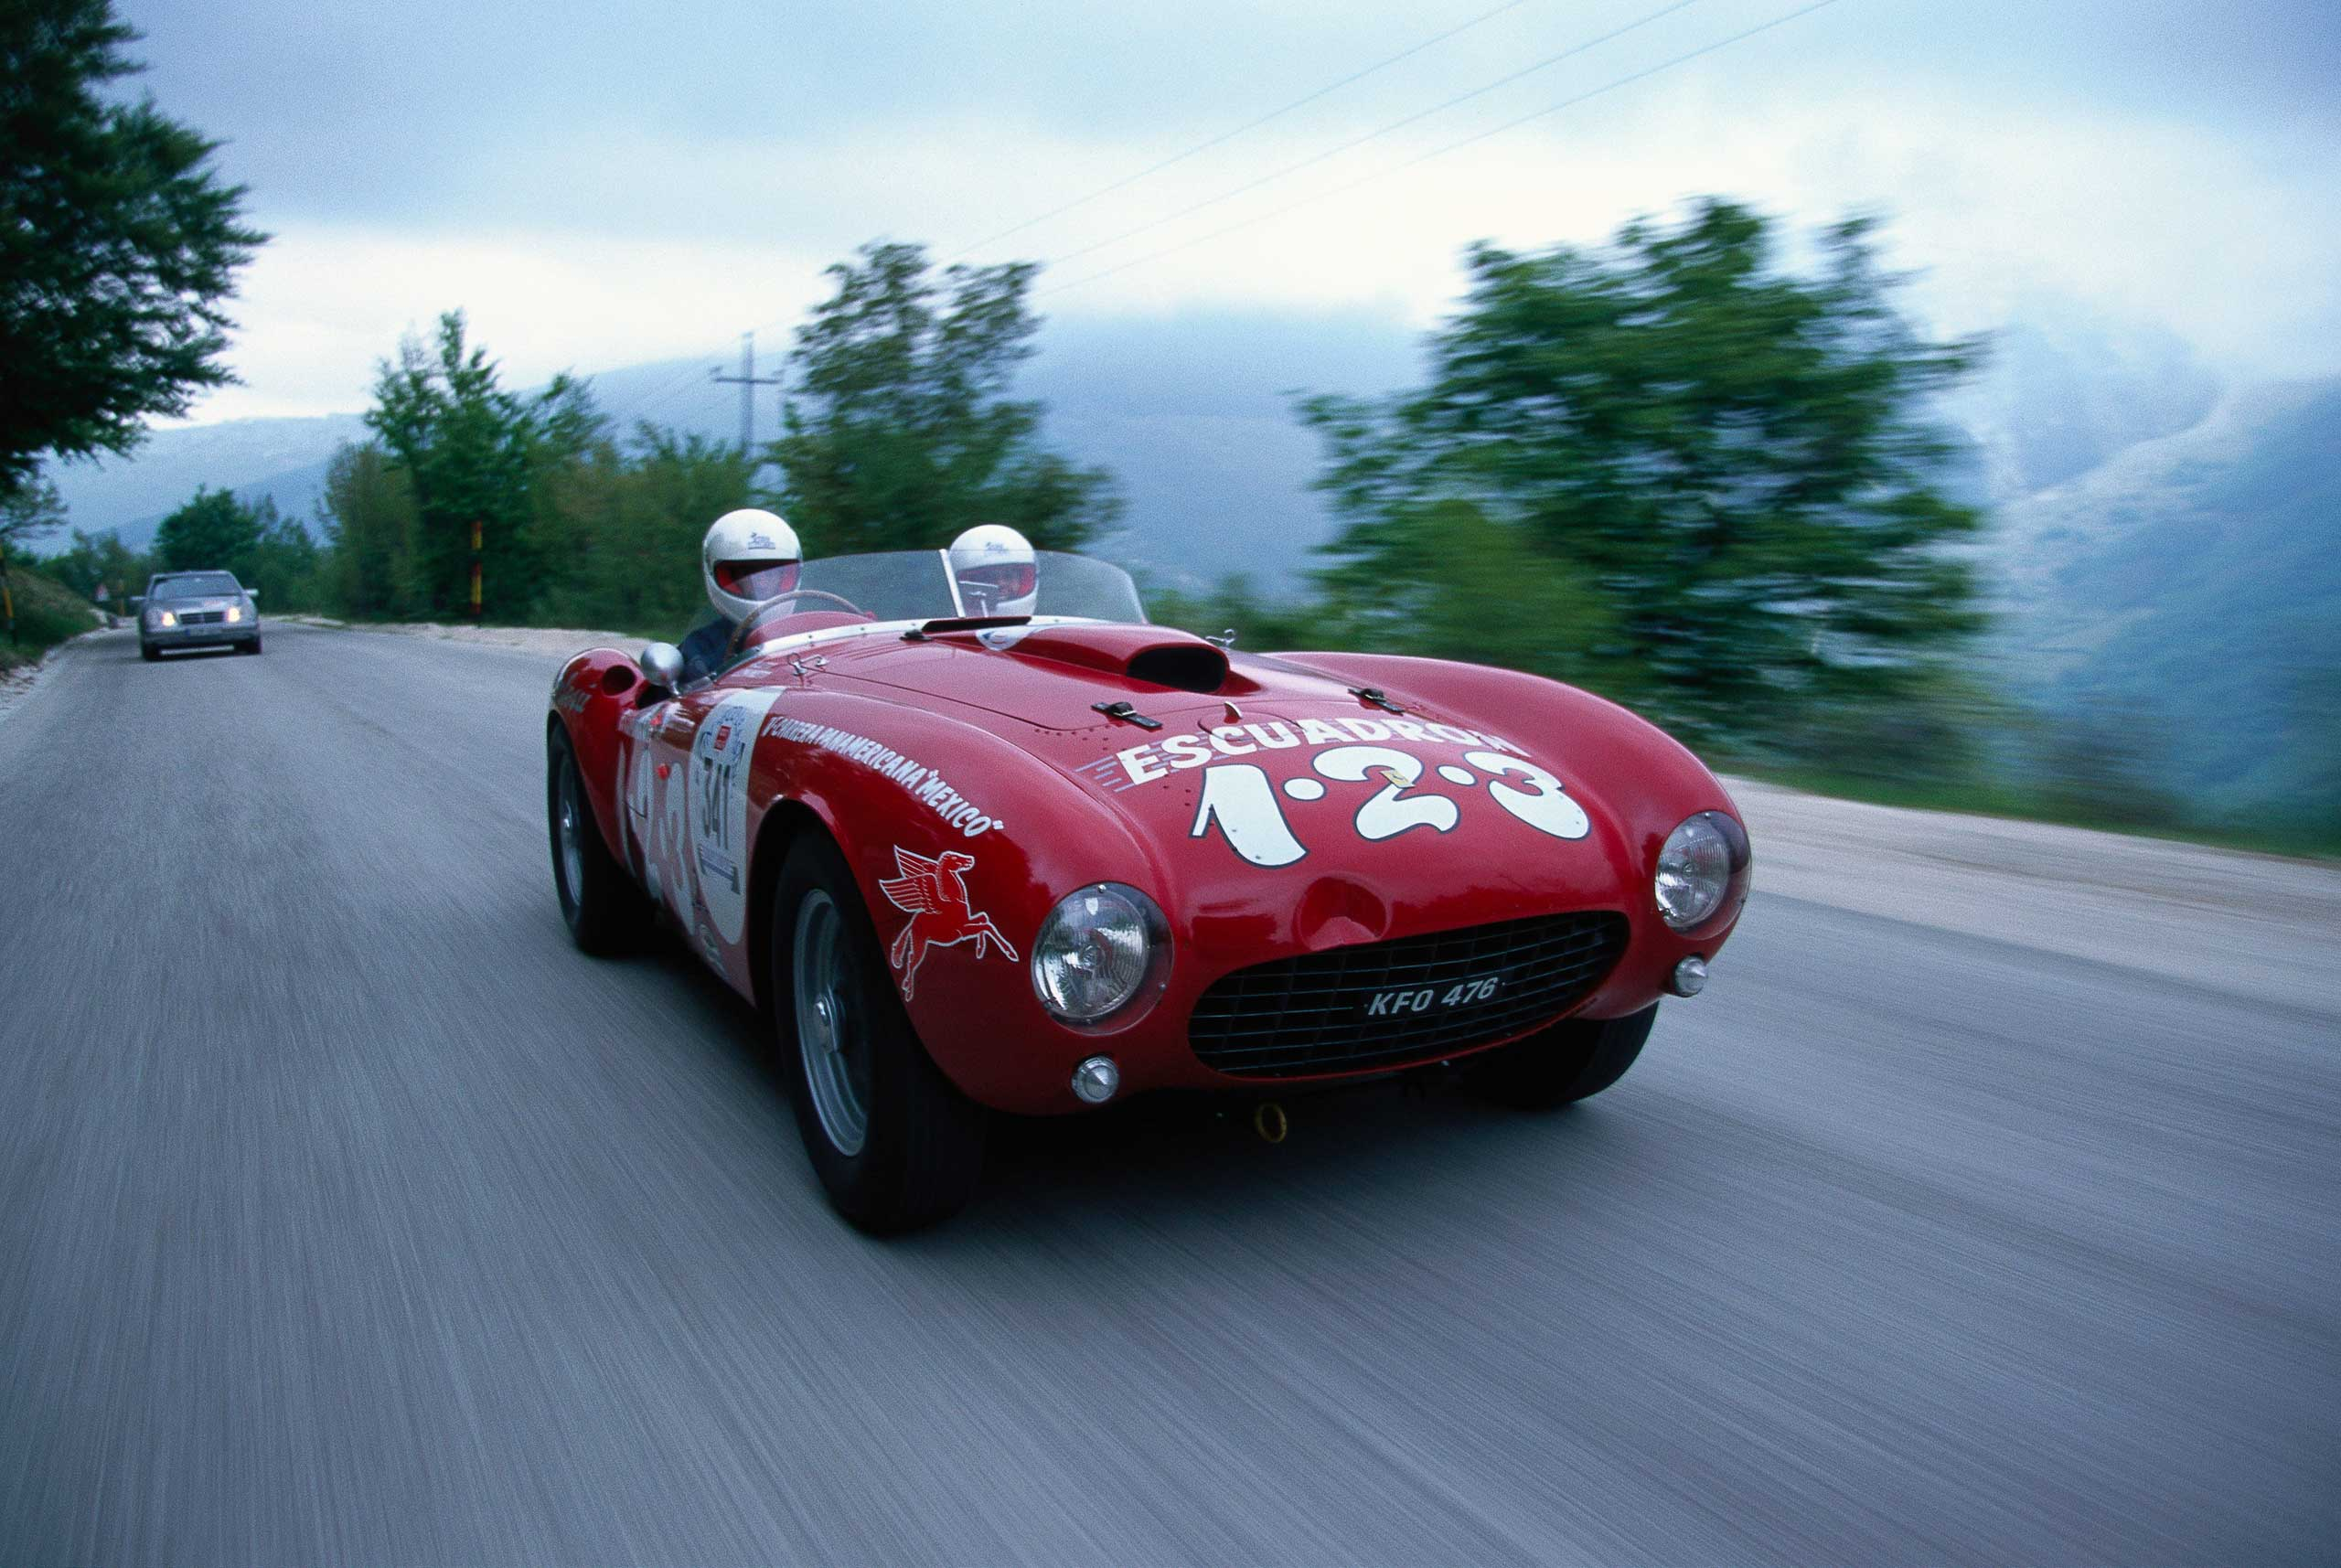 1953: The 375 Mille Miglia Spyder - Chassis was first introduced at the Paris Auto Salon.